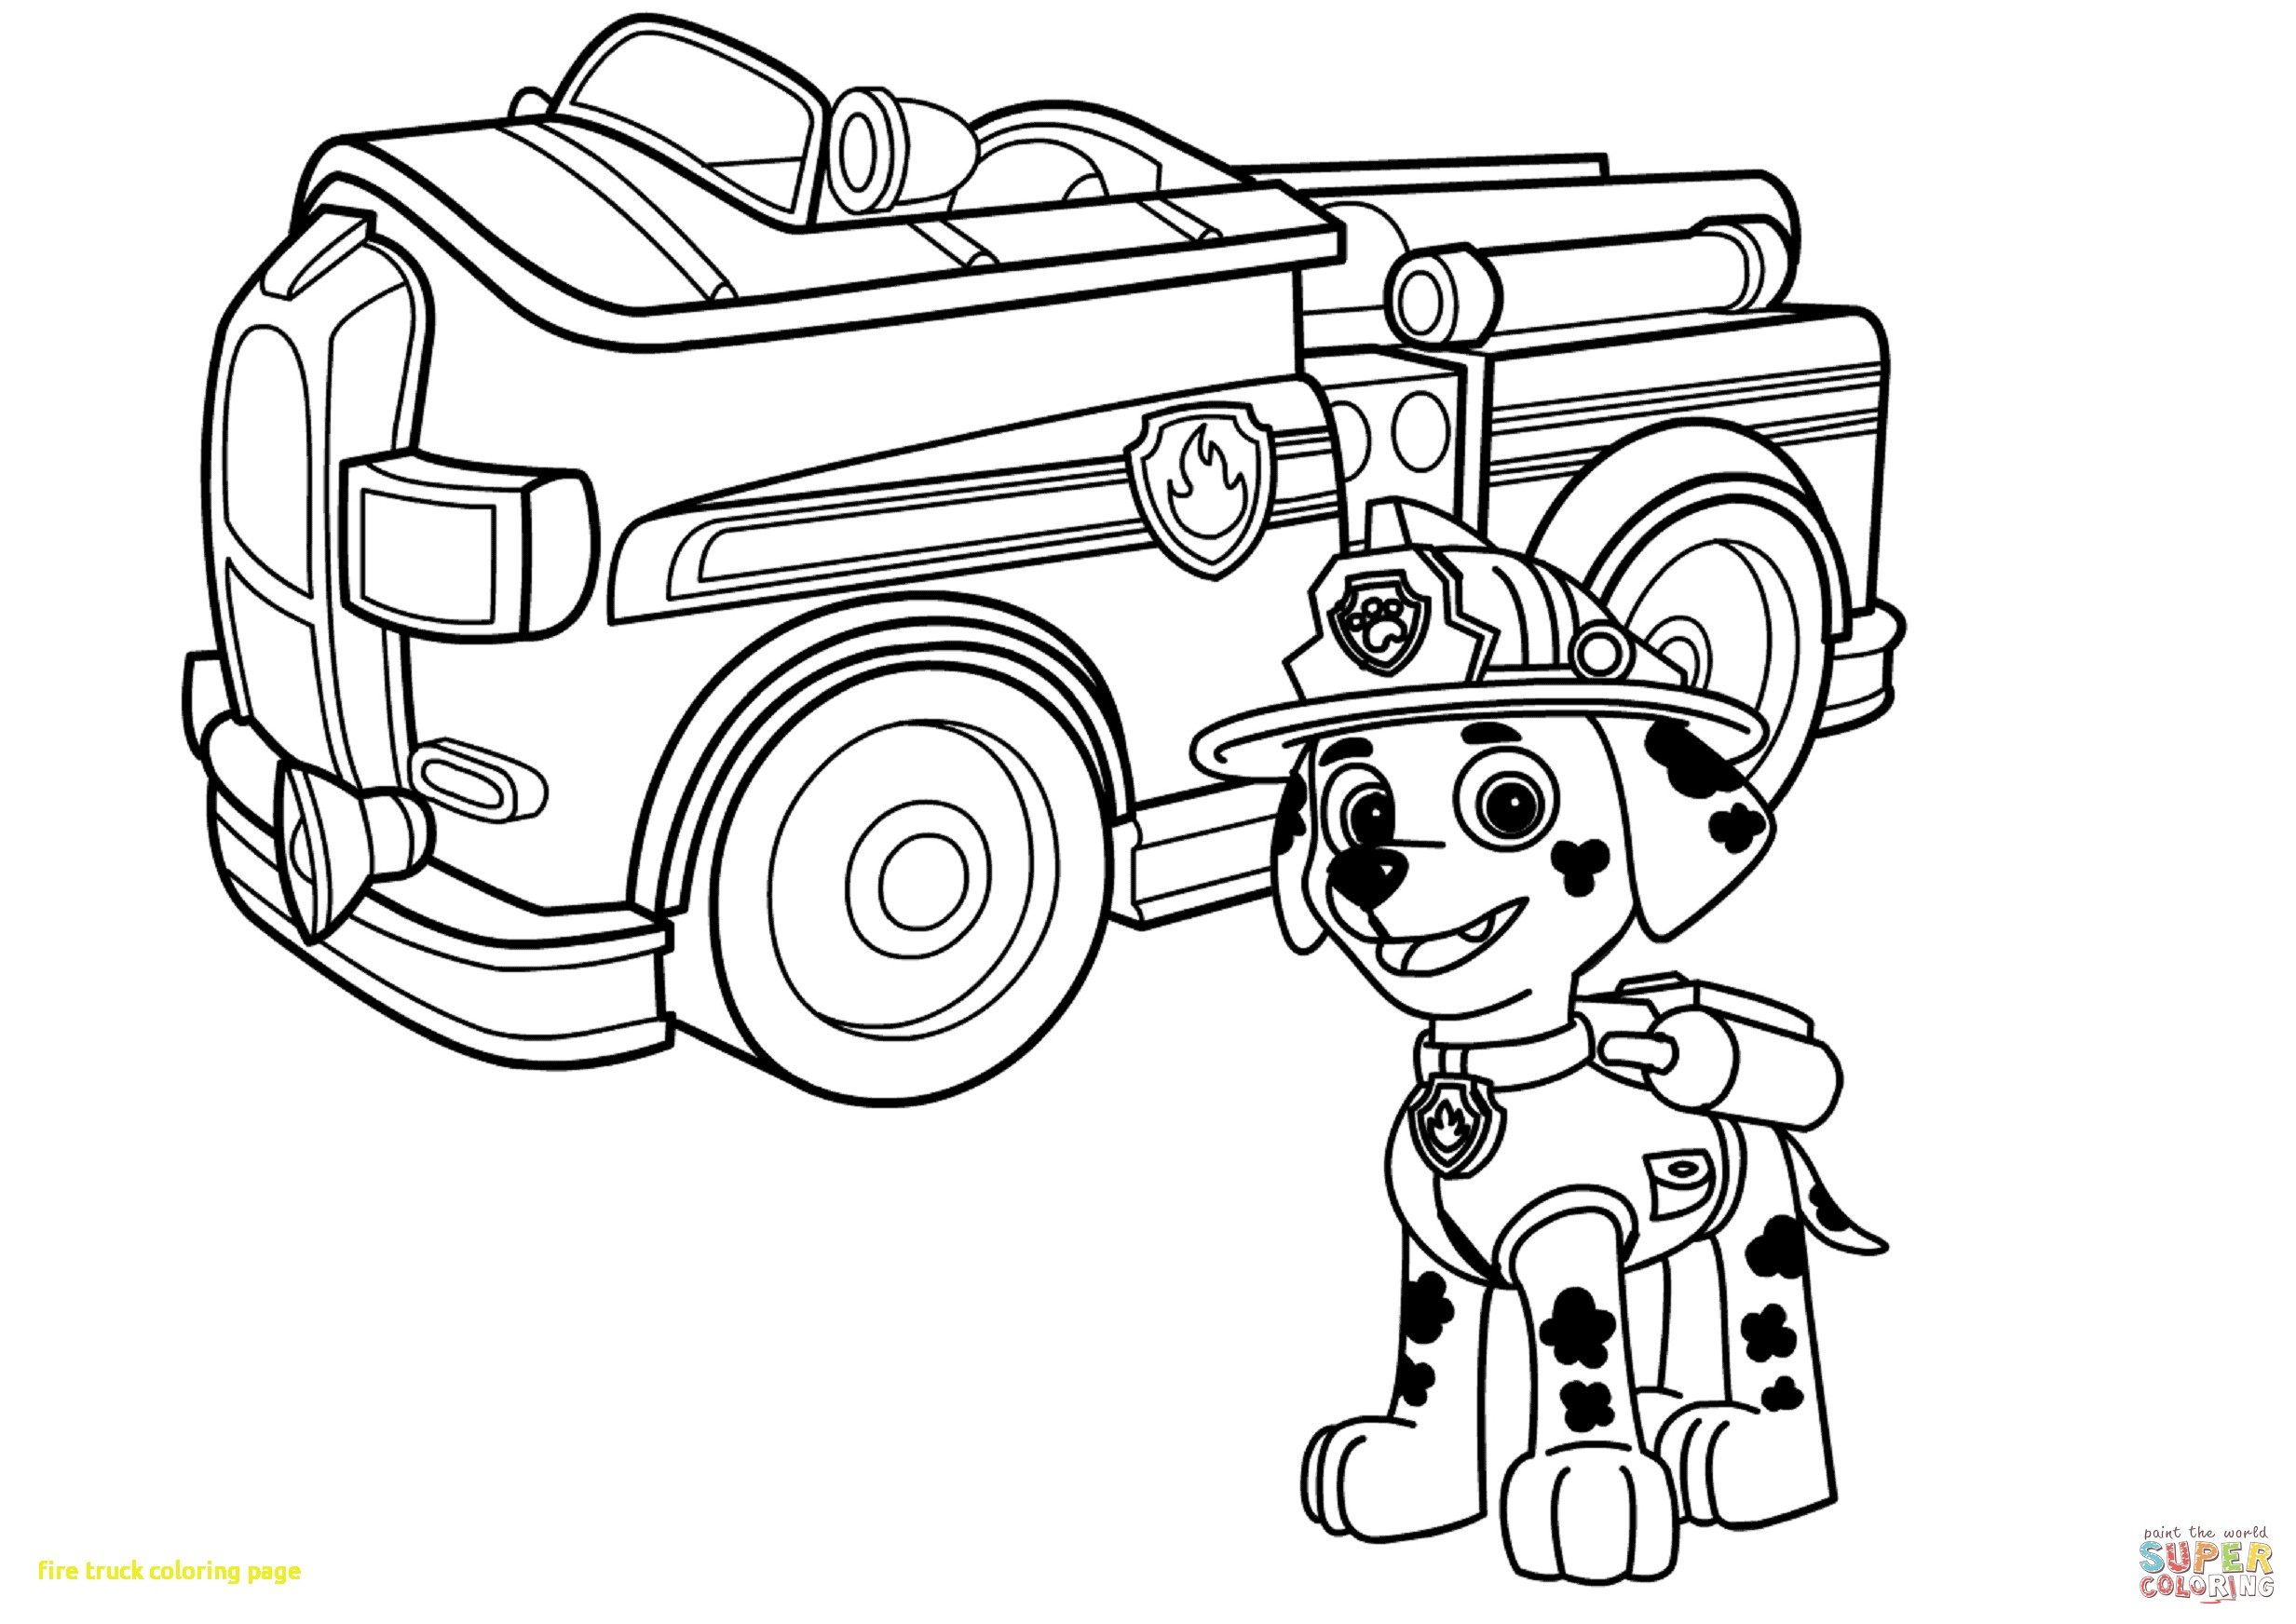 2465x1744 Fire Truck Coloring Page With Draw Fire Truck Coloring Page 91